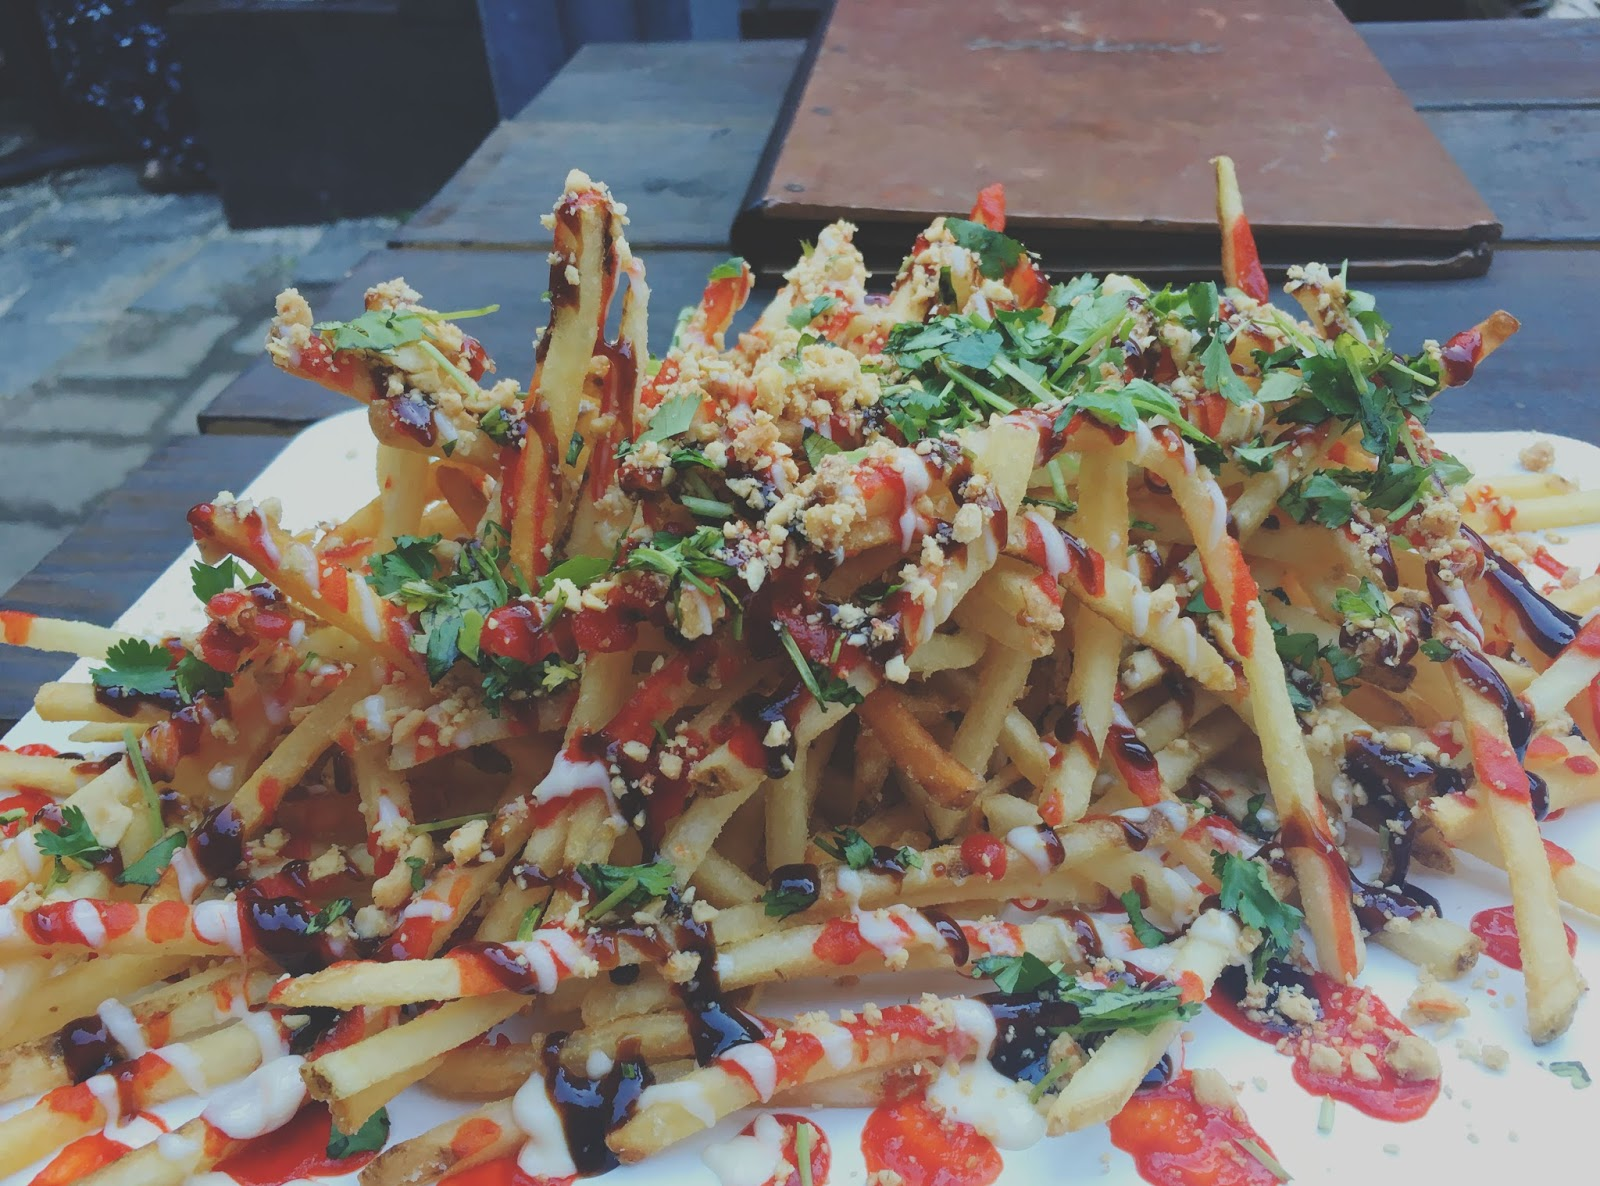 Vietnamese fries at Boheme - a restaurant in Houston, Texas